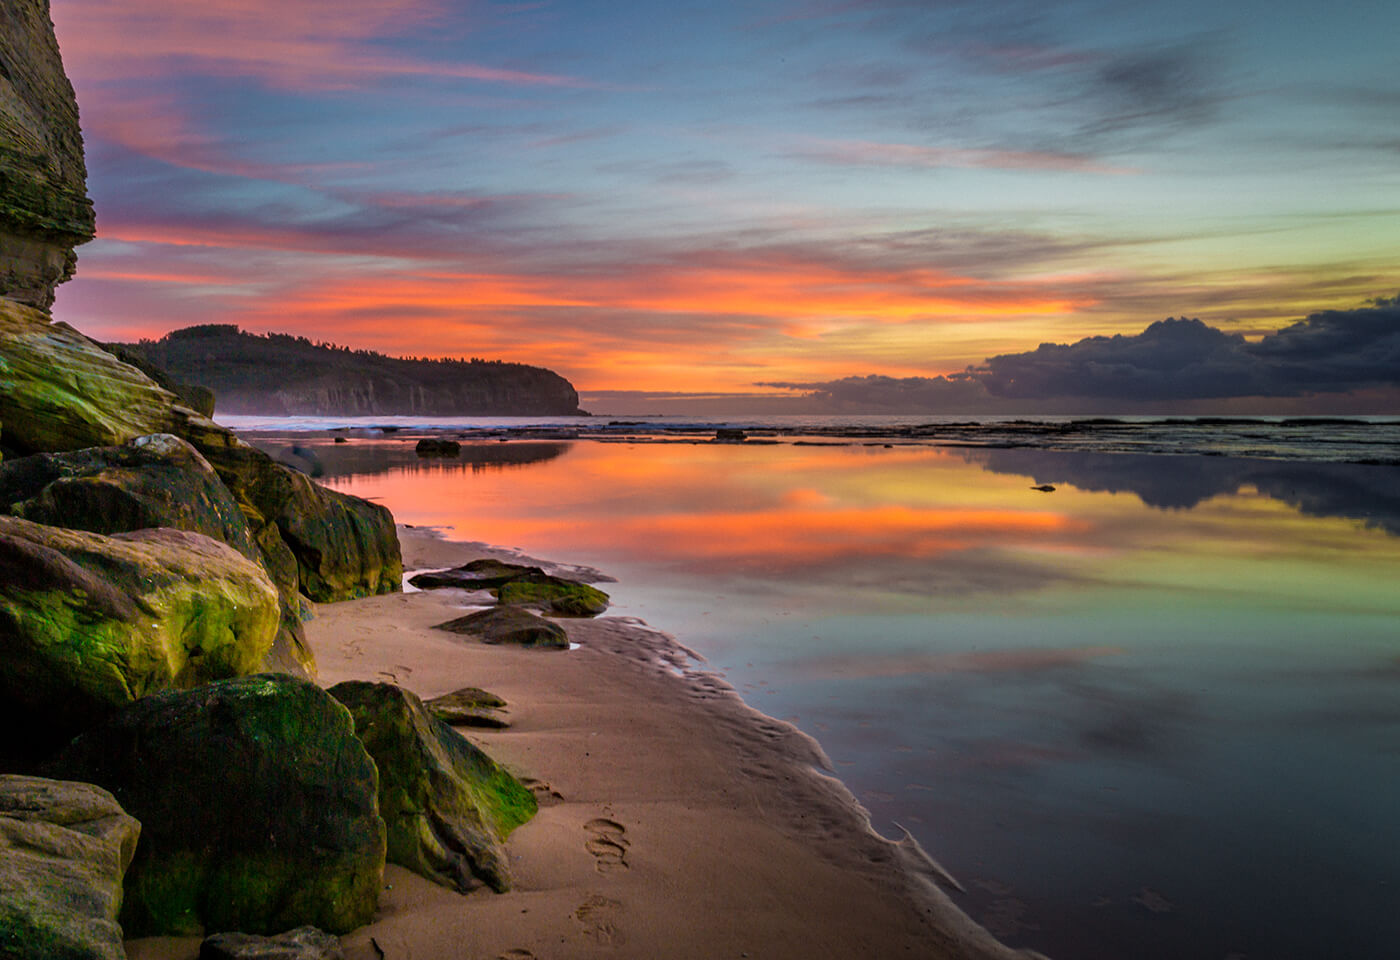 Sunrise photography at North Narrabeen Rockpool by Jenn Cooper